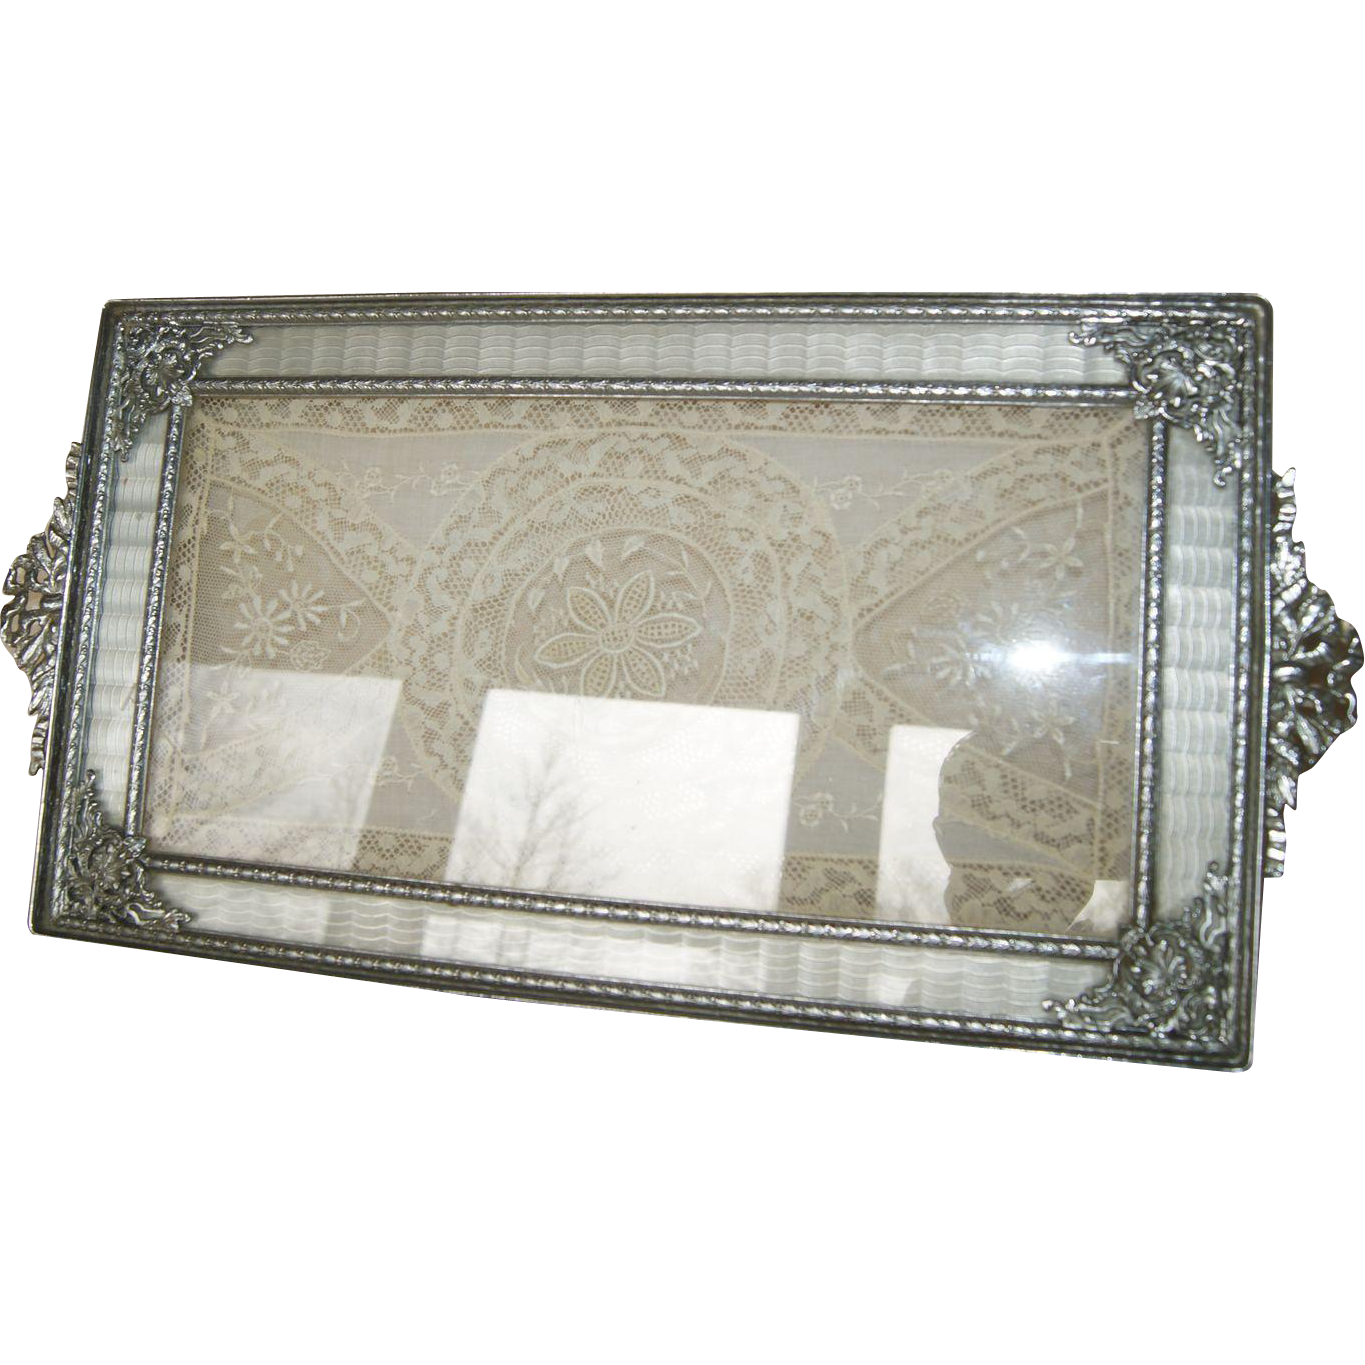 Vintage 1920's Silver Apollo Studios Vanity Perfume Tray Guilloche From  Fifis-antique-perfume-bottles-compacts On Ruby Lane